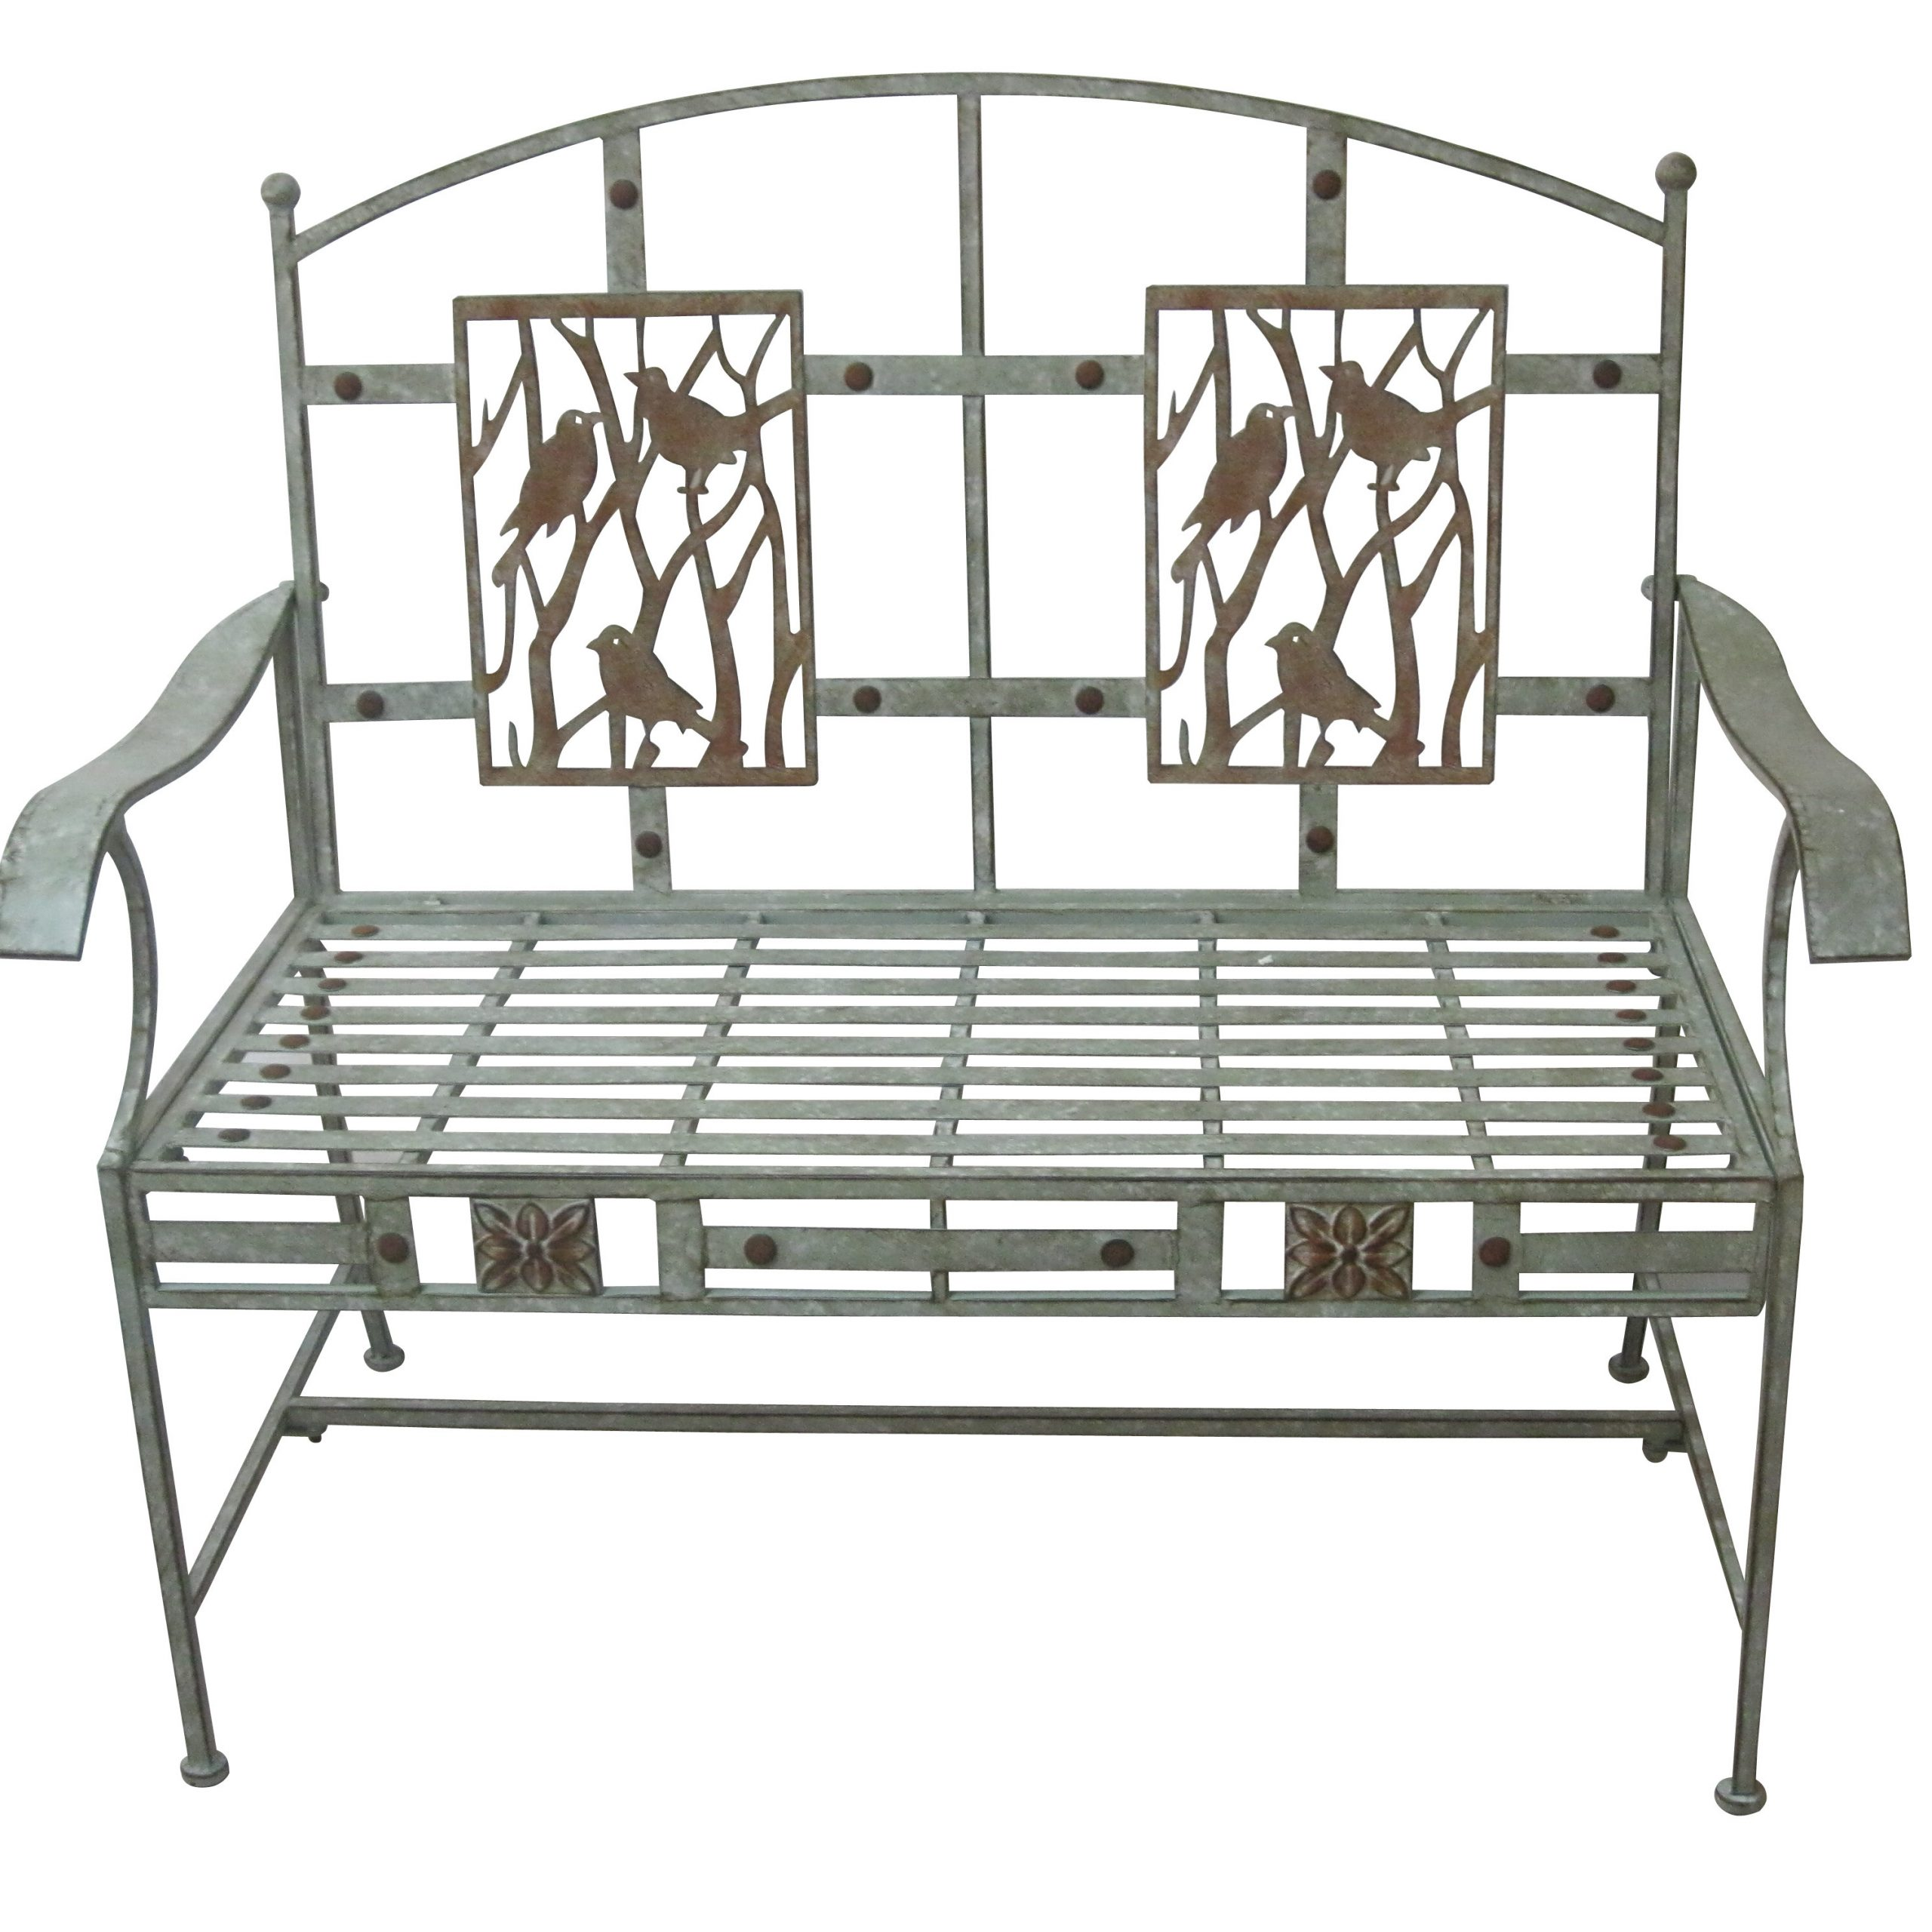 Rideout Metal Garden Bench Throughout Famous Gehlert Traditional Patio Iron Garden Benches (View 8 of 30)